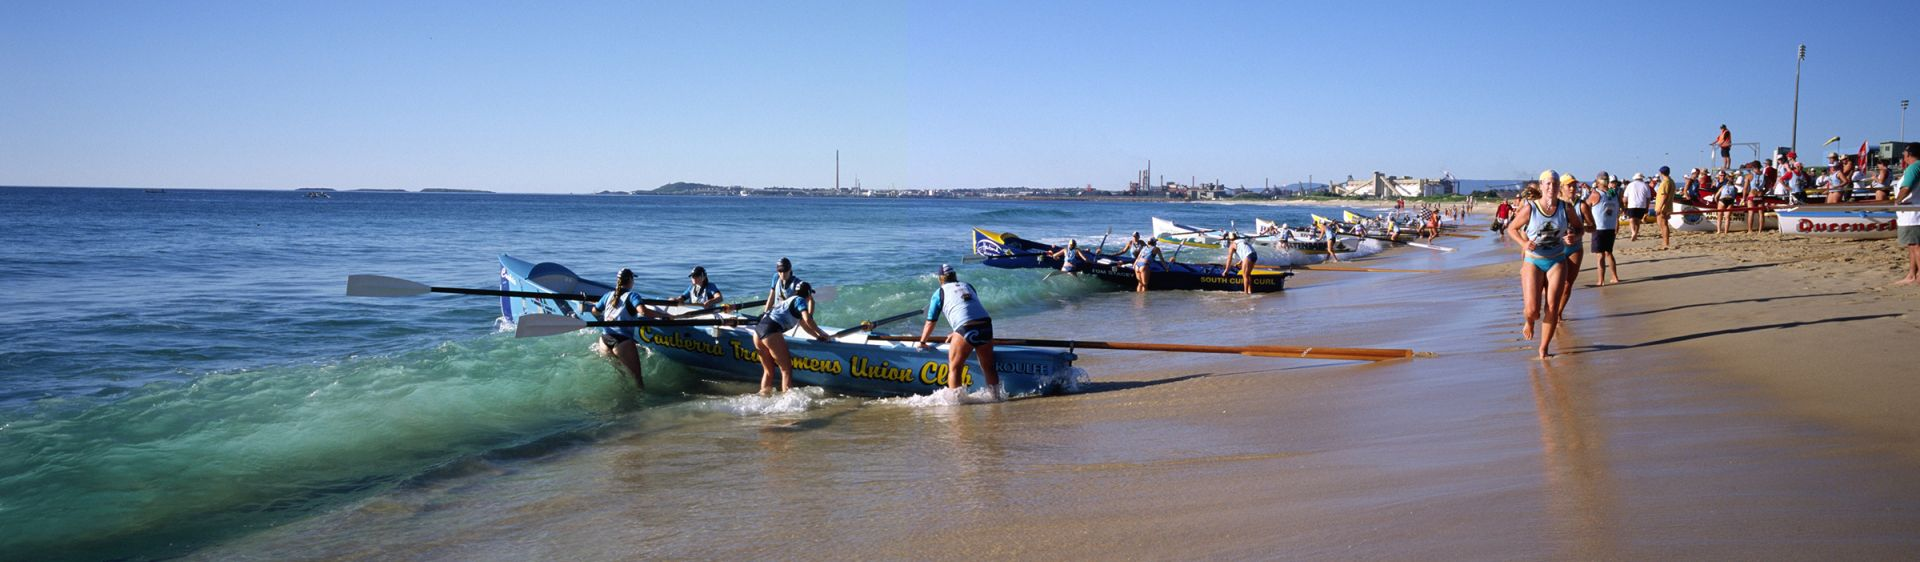 Surfboat crews preparing to race, Wollongong City Beach